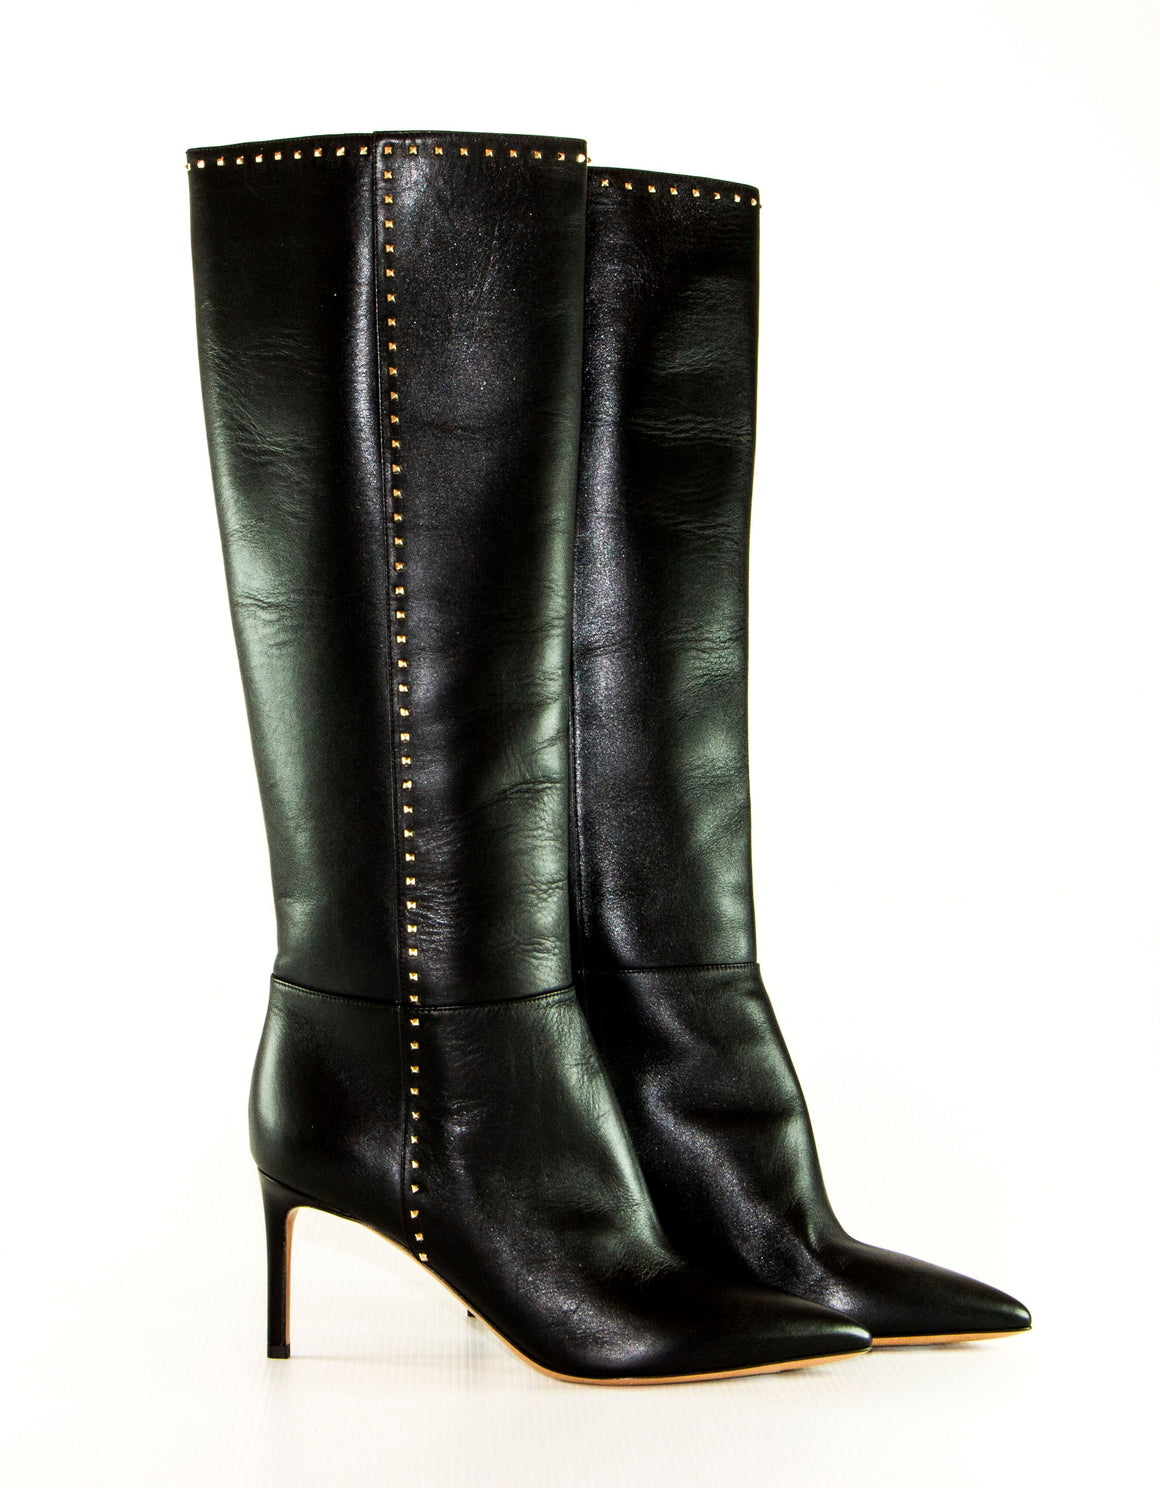 Valentino Rockstud black leather boots